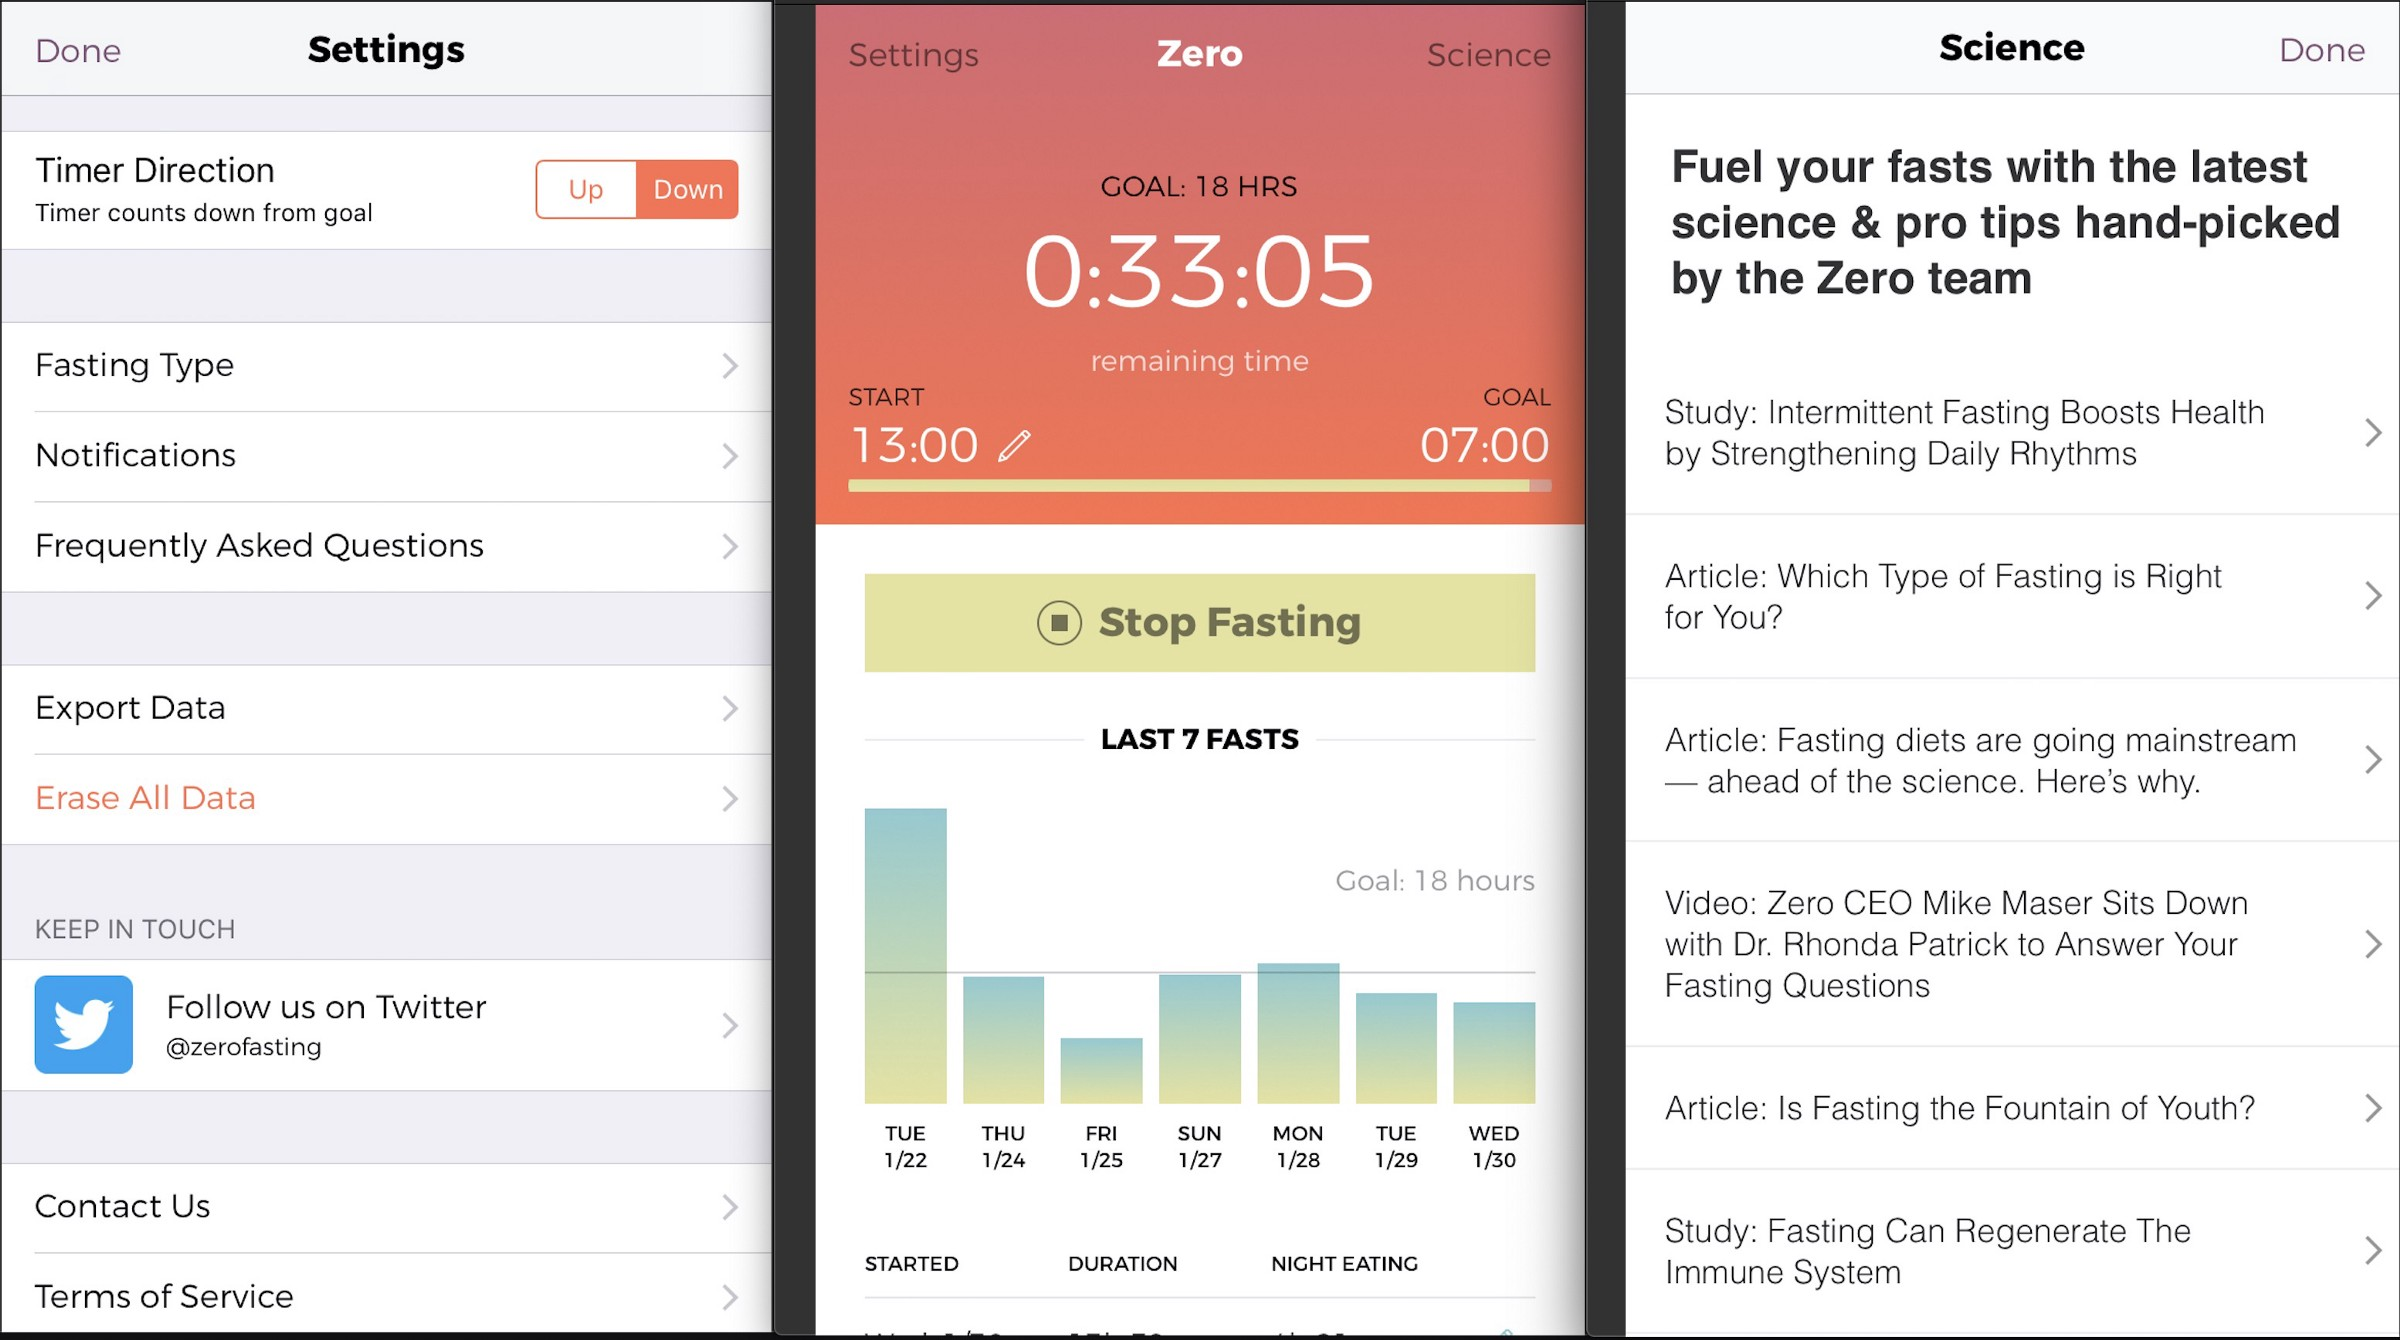 How Zero Wins: Product Analysis of the Fasting Tracker - By